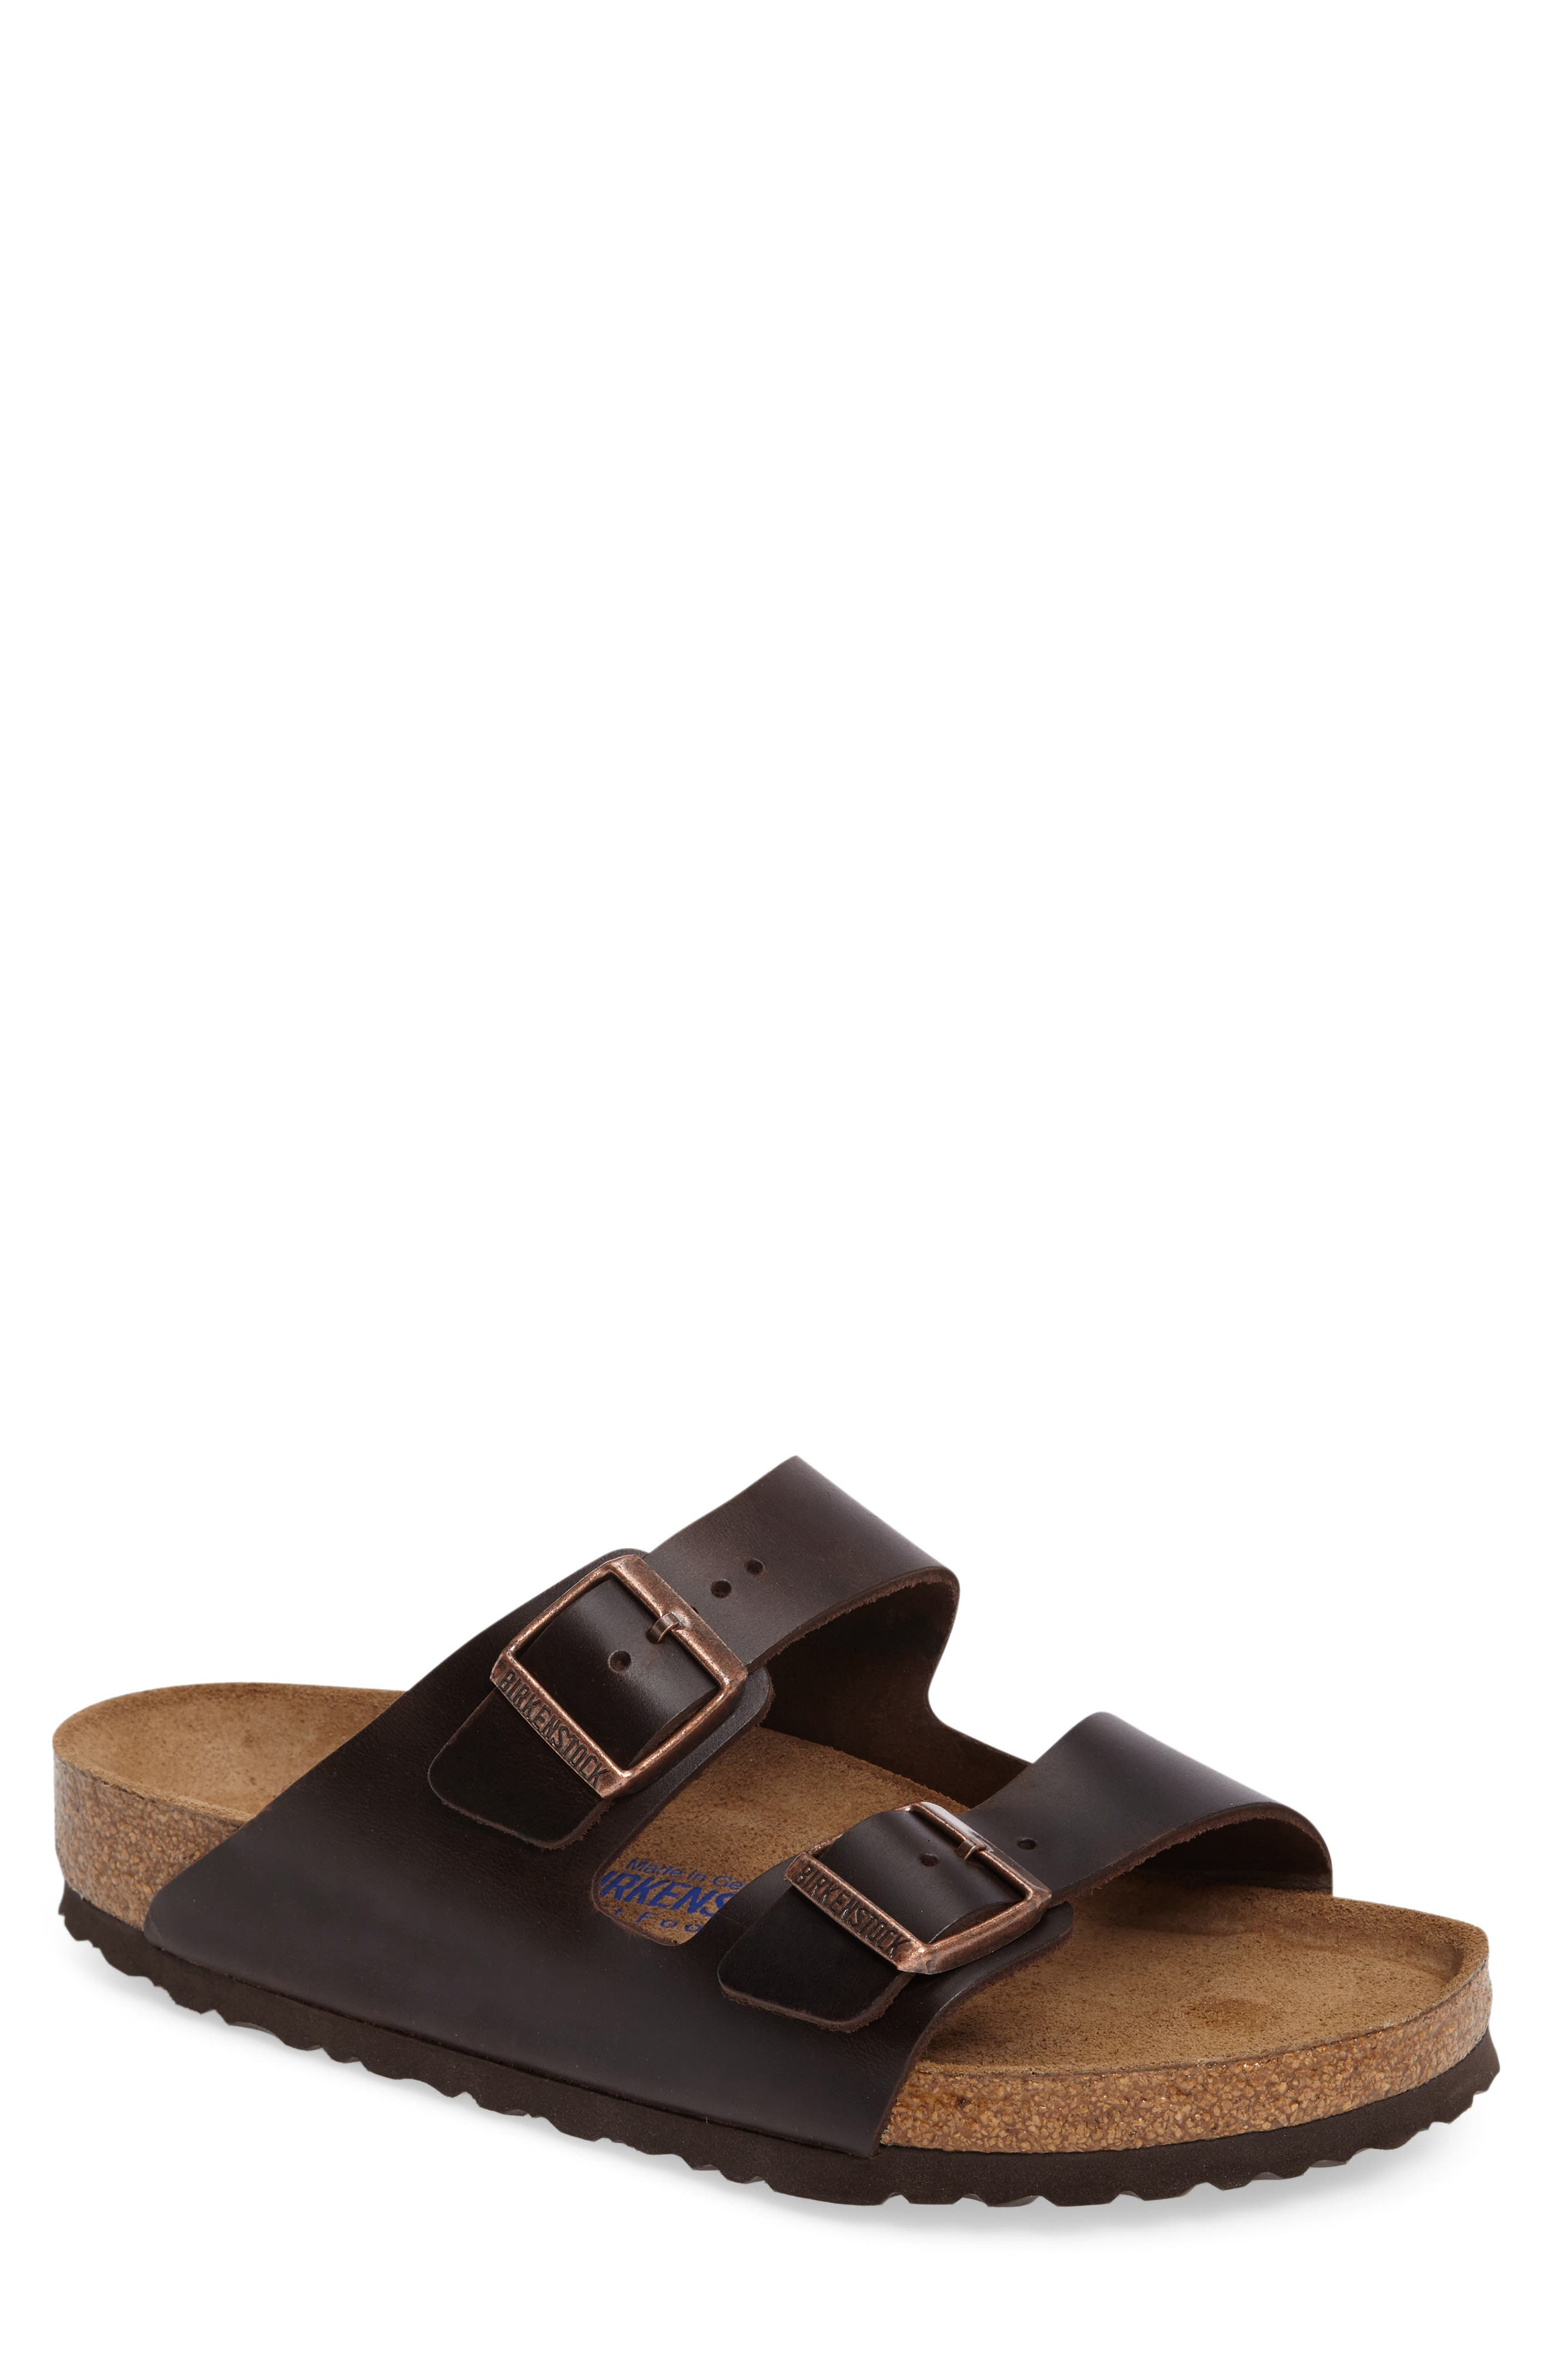 Birkenstock 'Arizona Soft' Sandal   (Men)